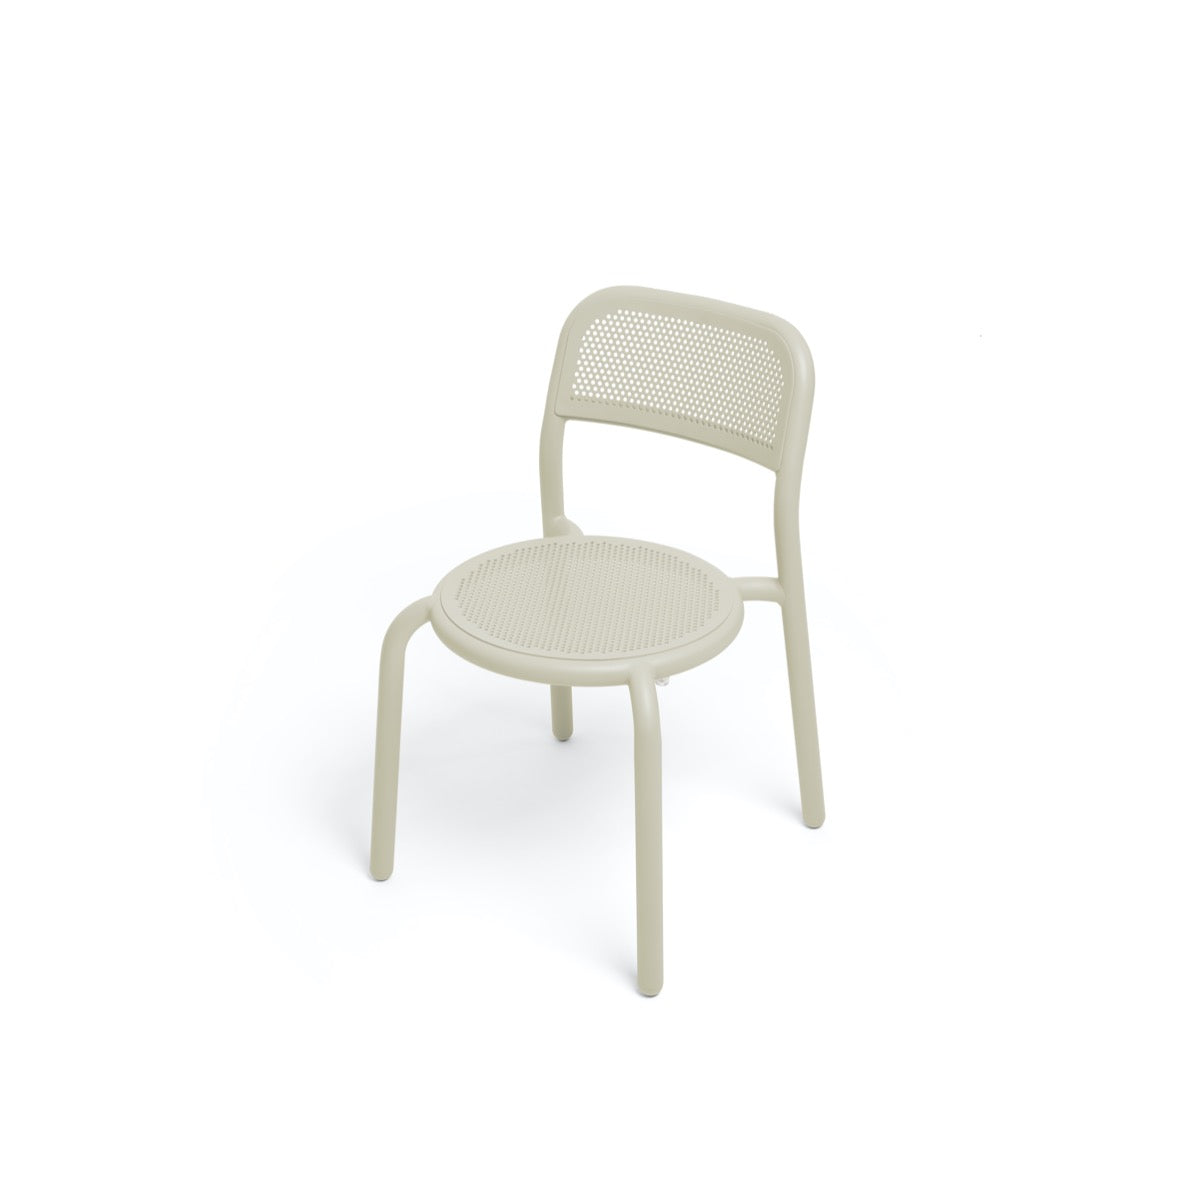 toni chair desert sand